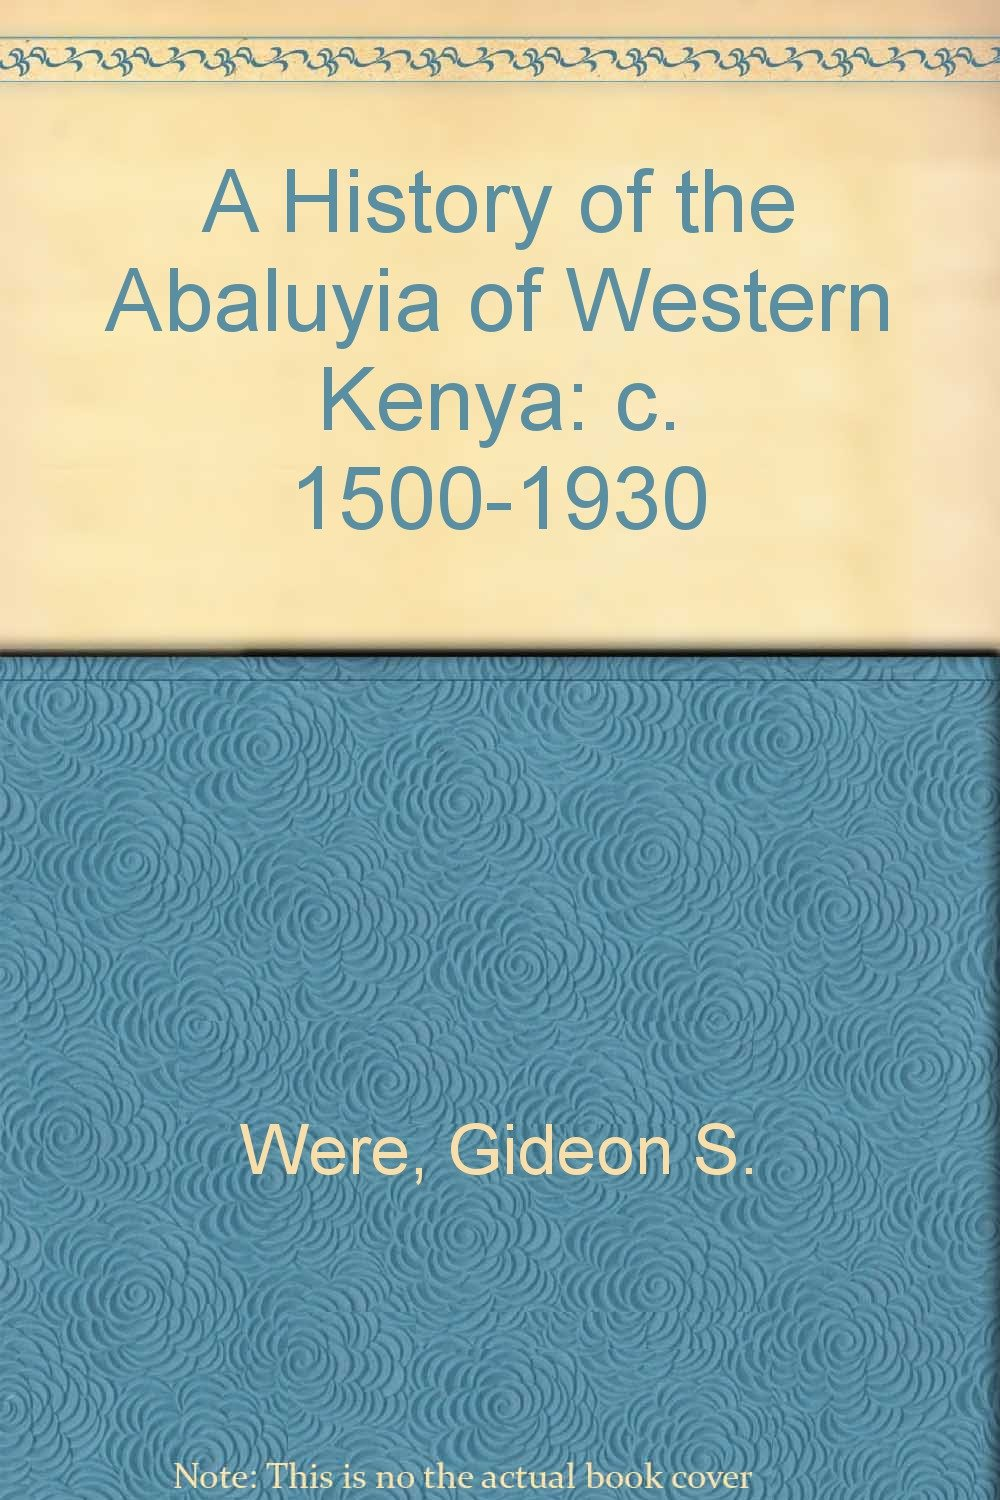 A History of the Abaluyia of Western Kenya: c. 1500-1930